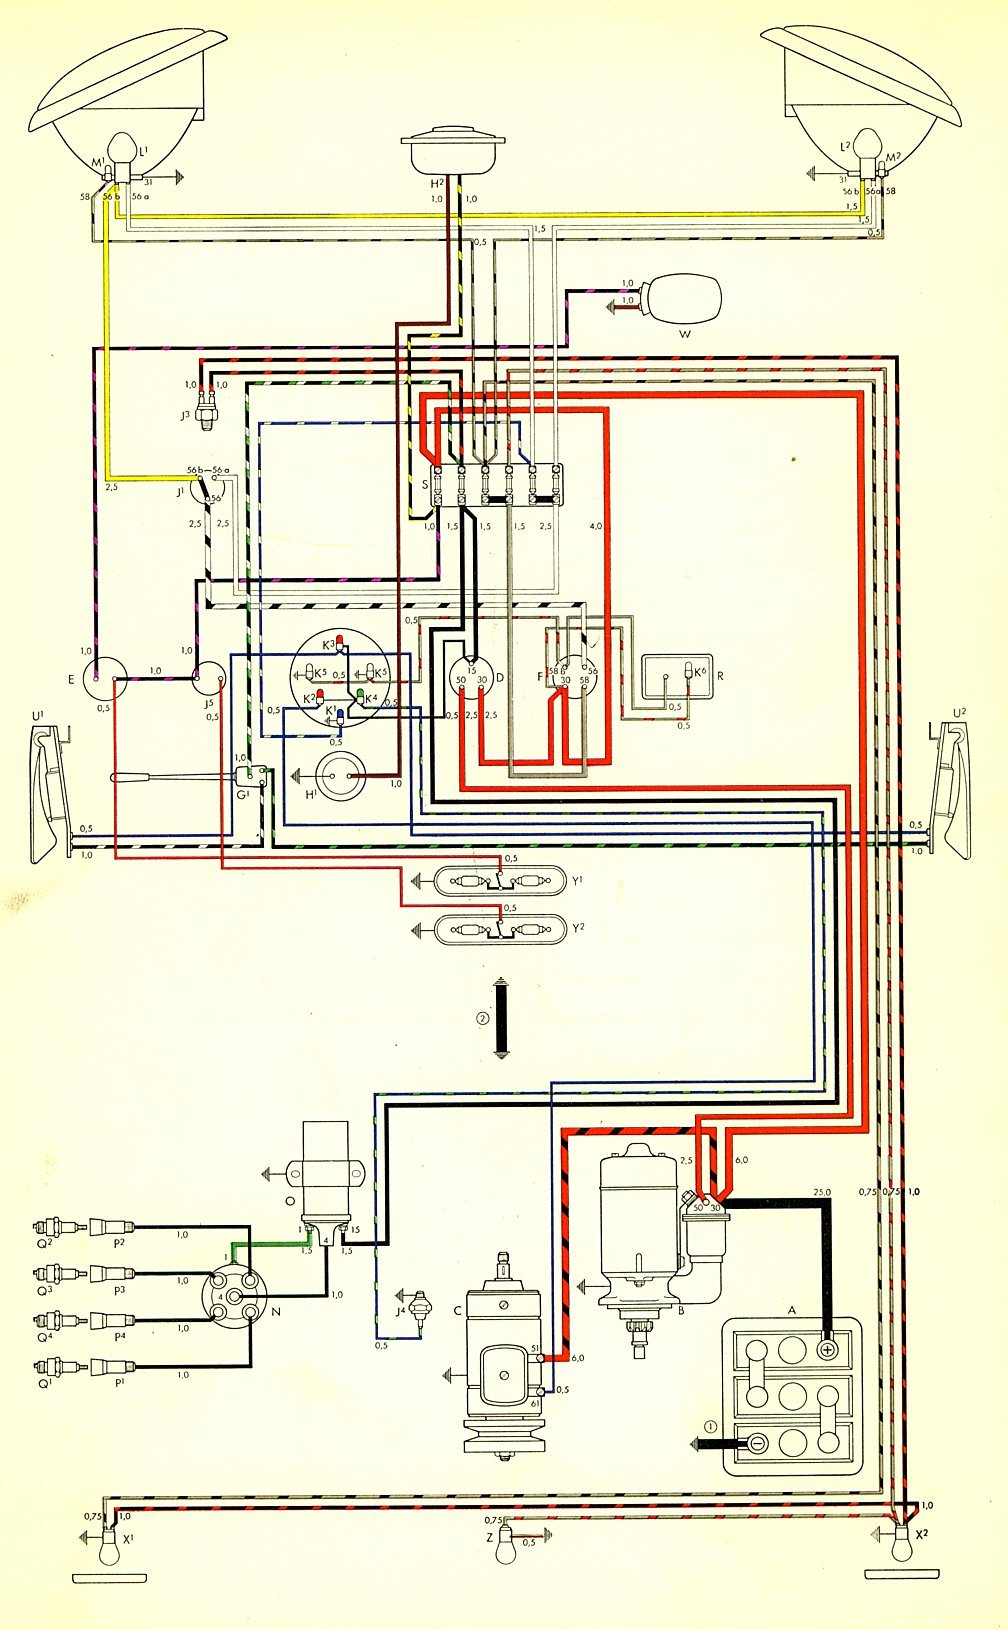 bus_59 1982 vw rabbit wiring harness 1981 volkswagen rabbit interior Wiring Harness Diagram at gsmx.co